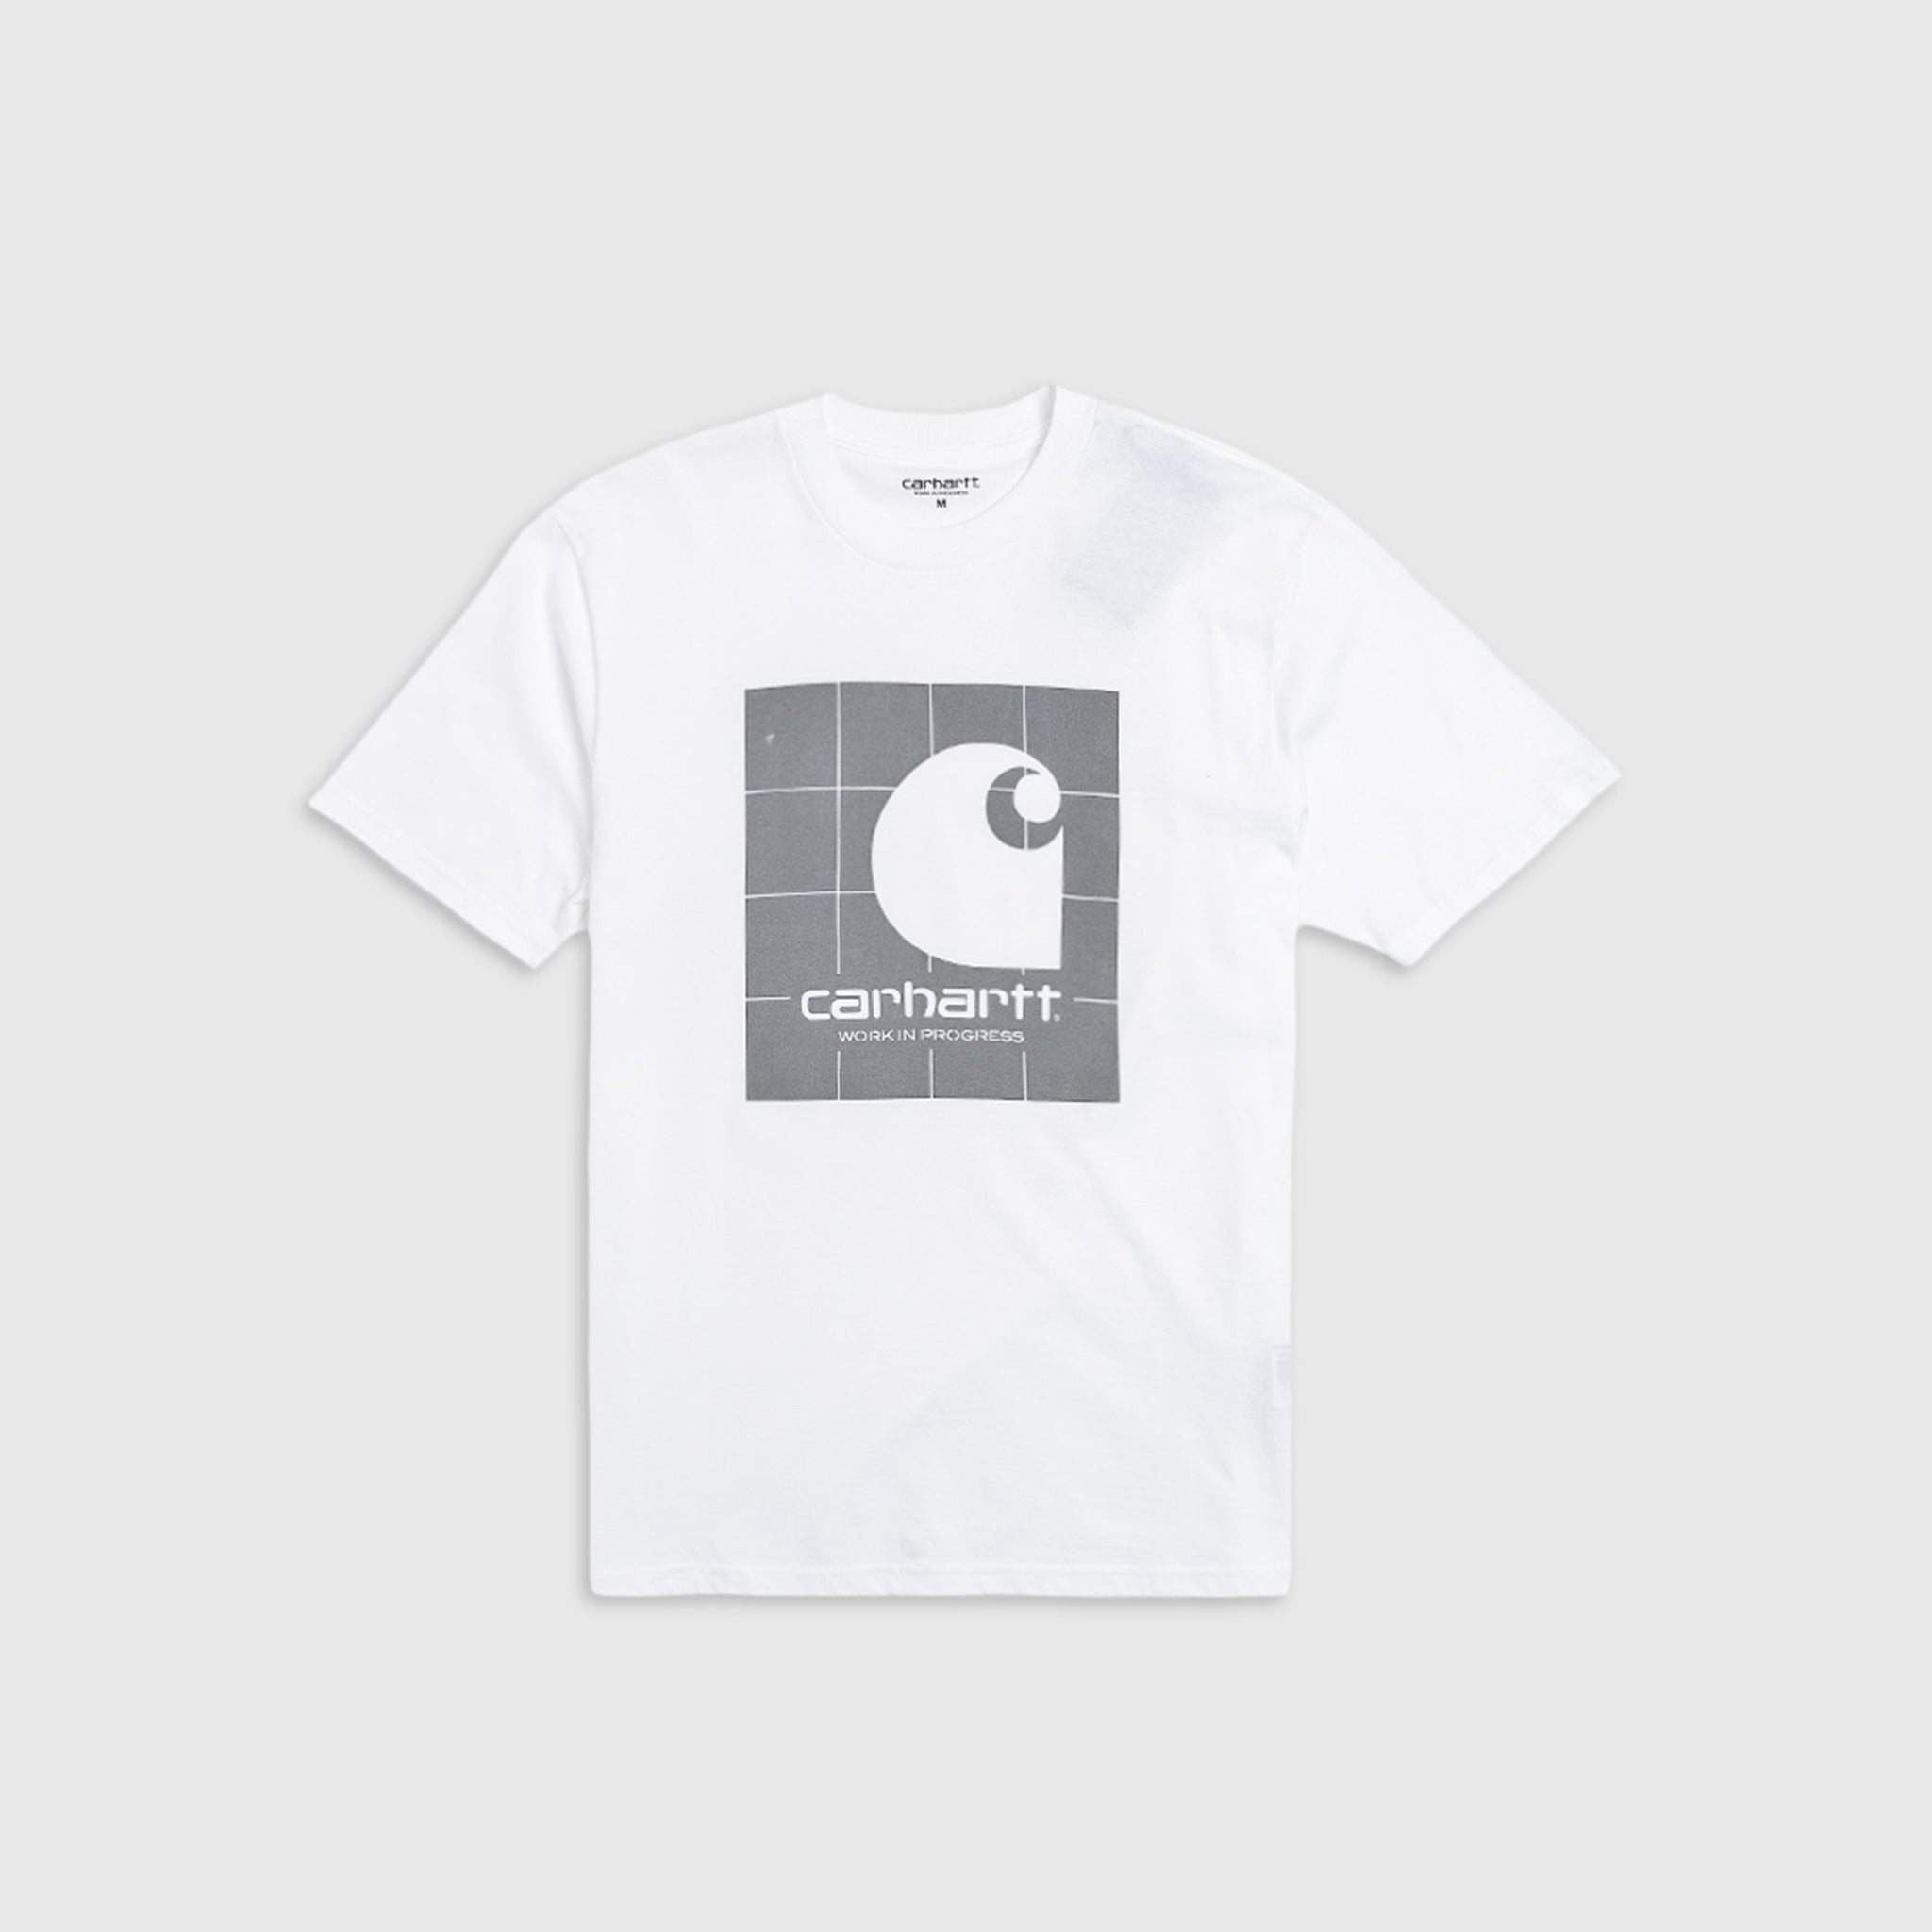 CARHARTT WIP REFLECTIVE SQUARE S/S T-SHIRT